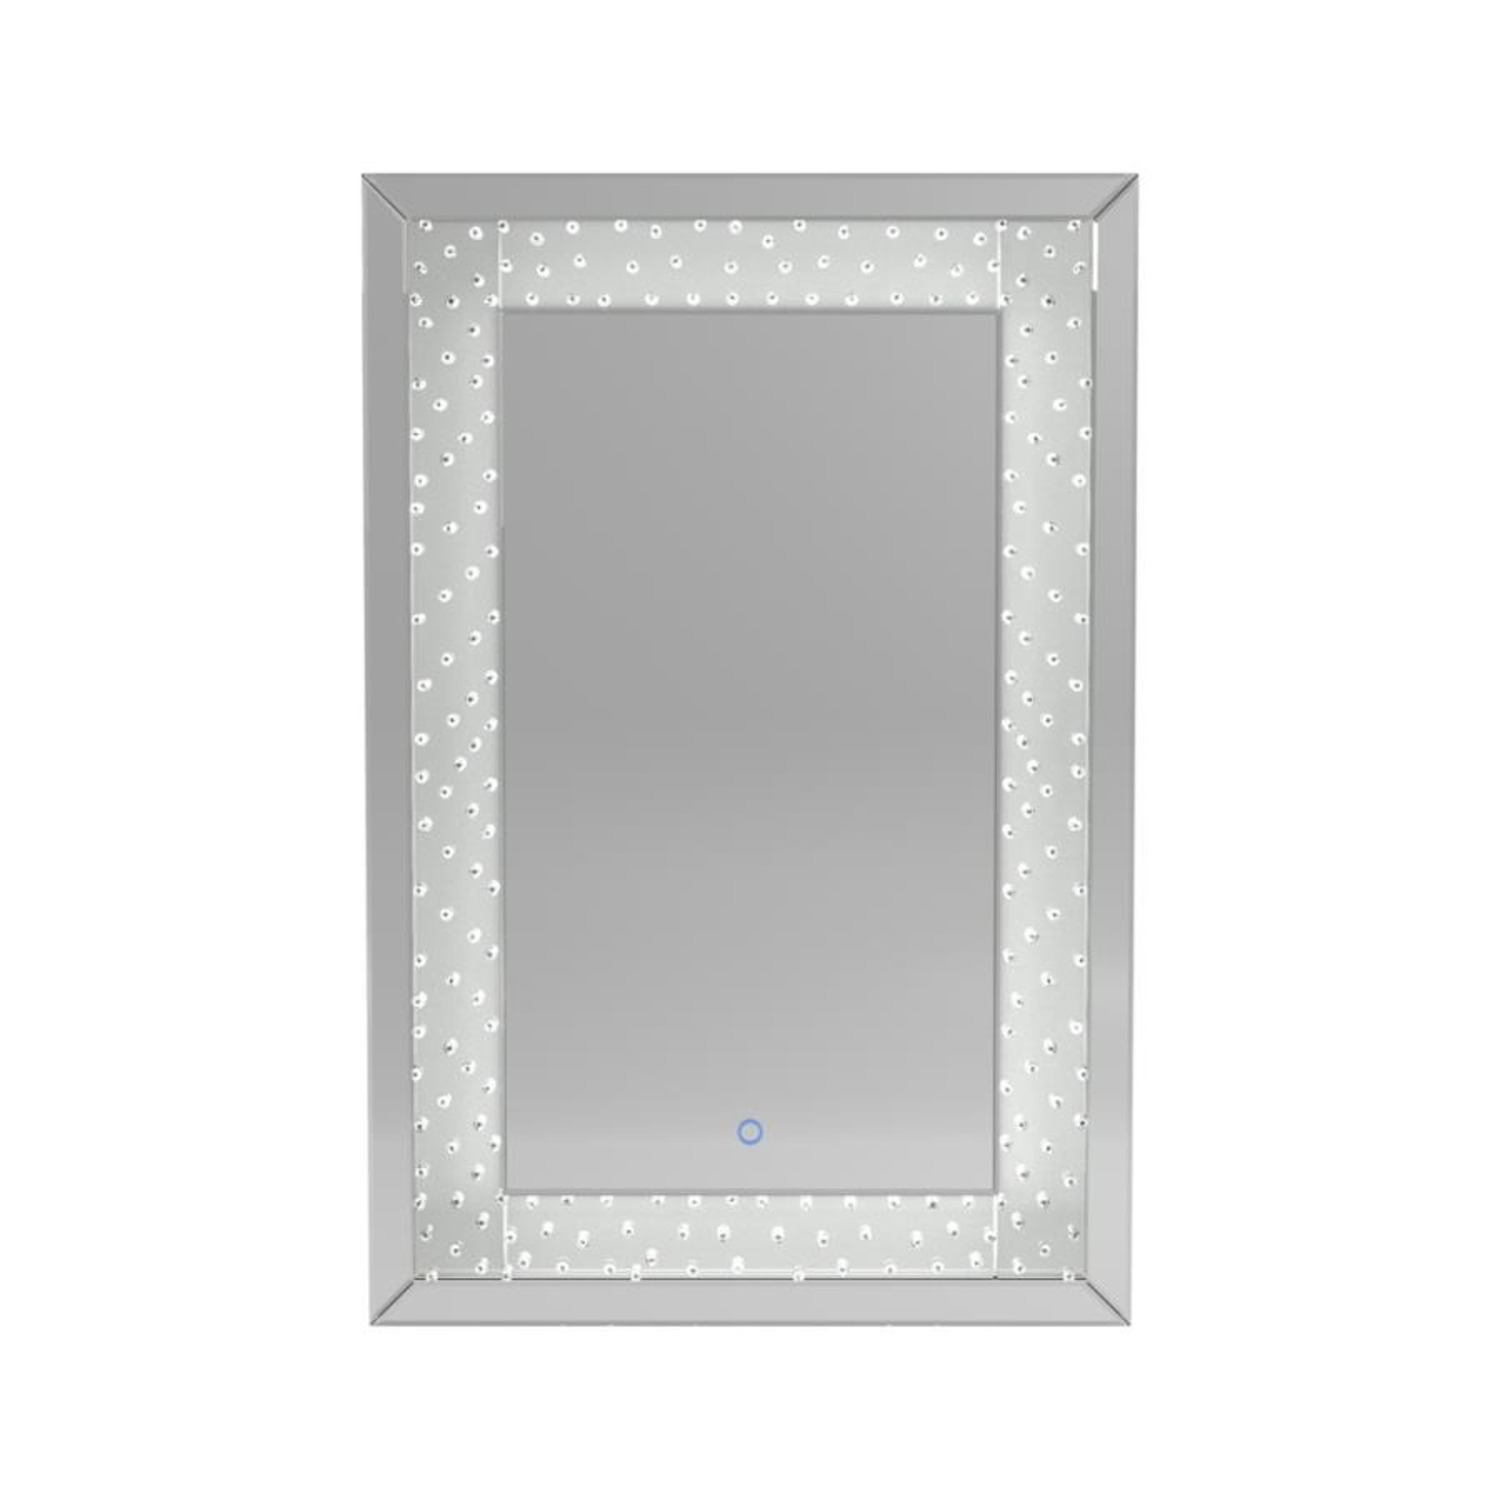 Wall Mirror In Silver Frame W/ Acrylic Crystals - image-2